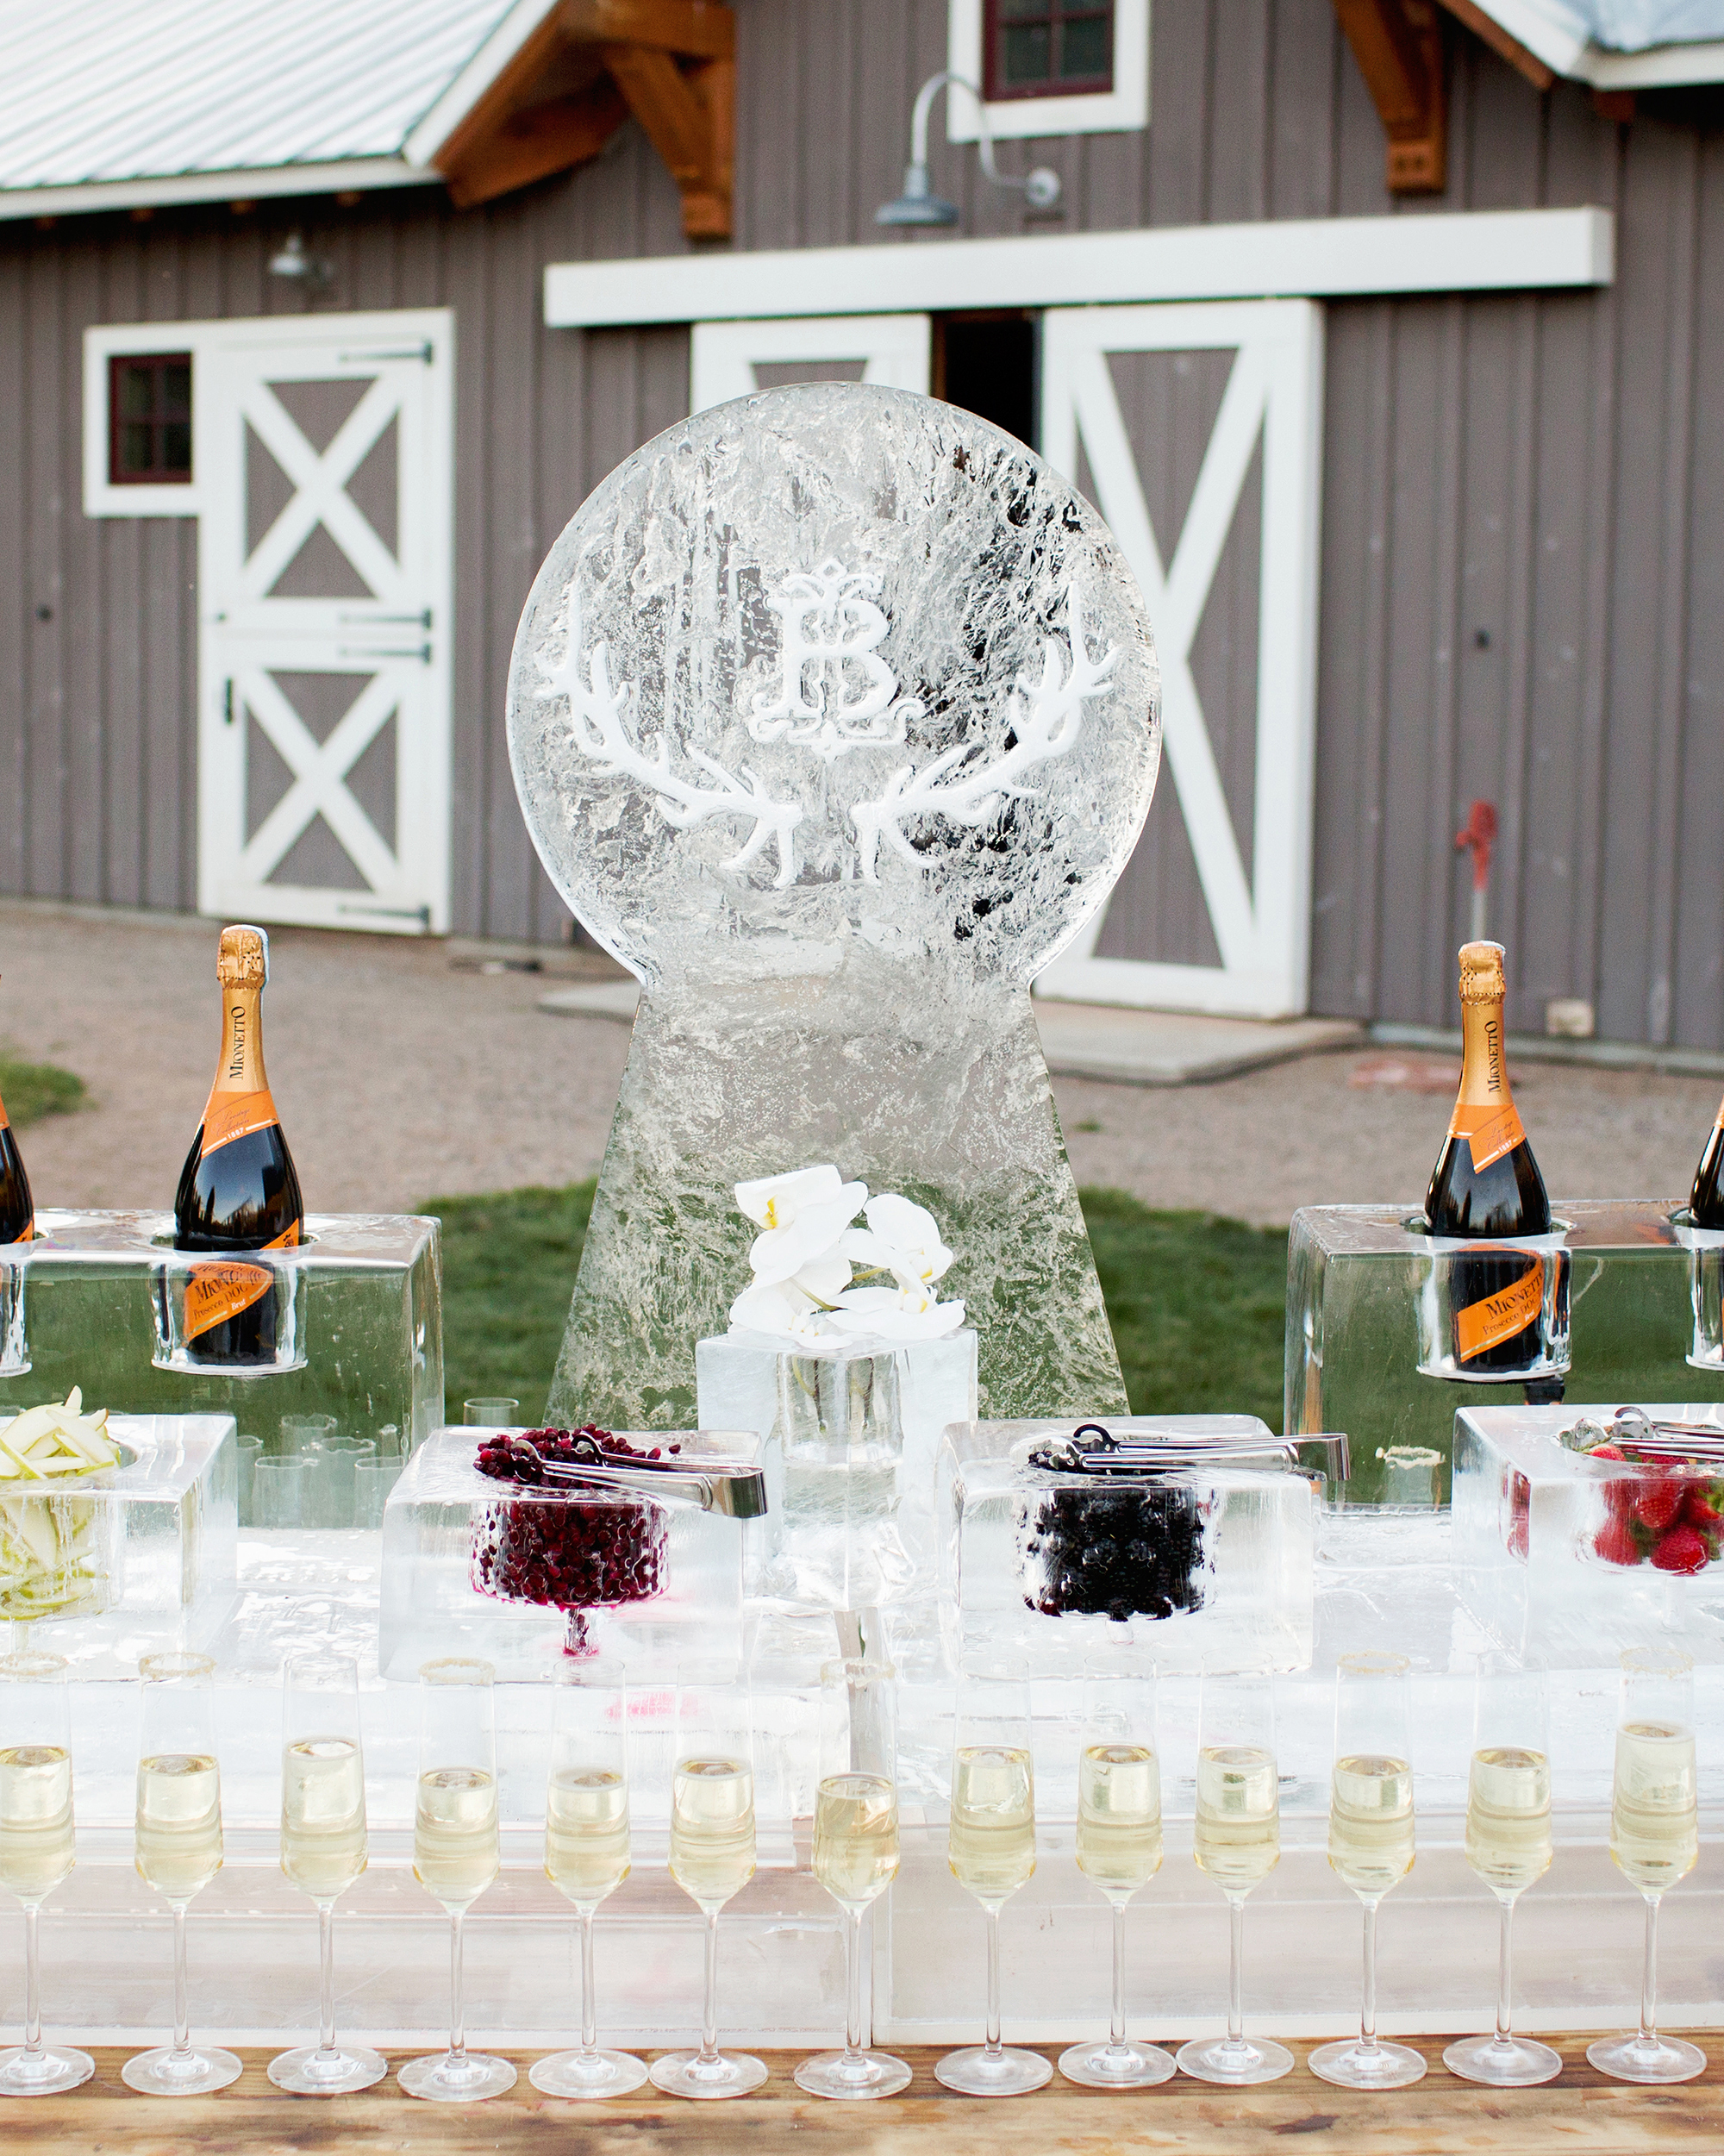 Next Level Wedding Ice Sculptures That Will Delight Your Guests